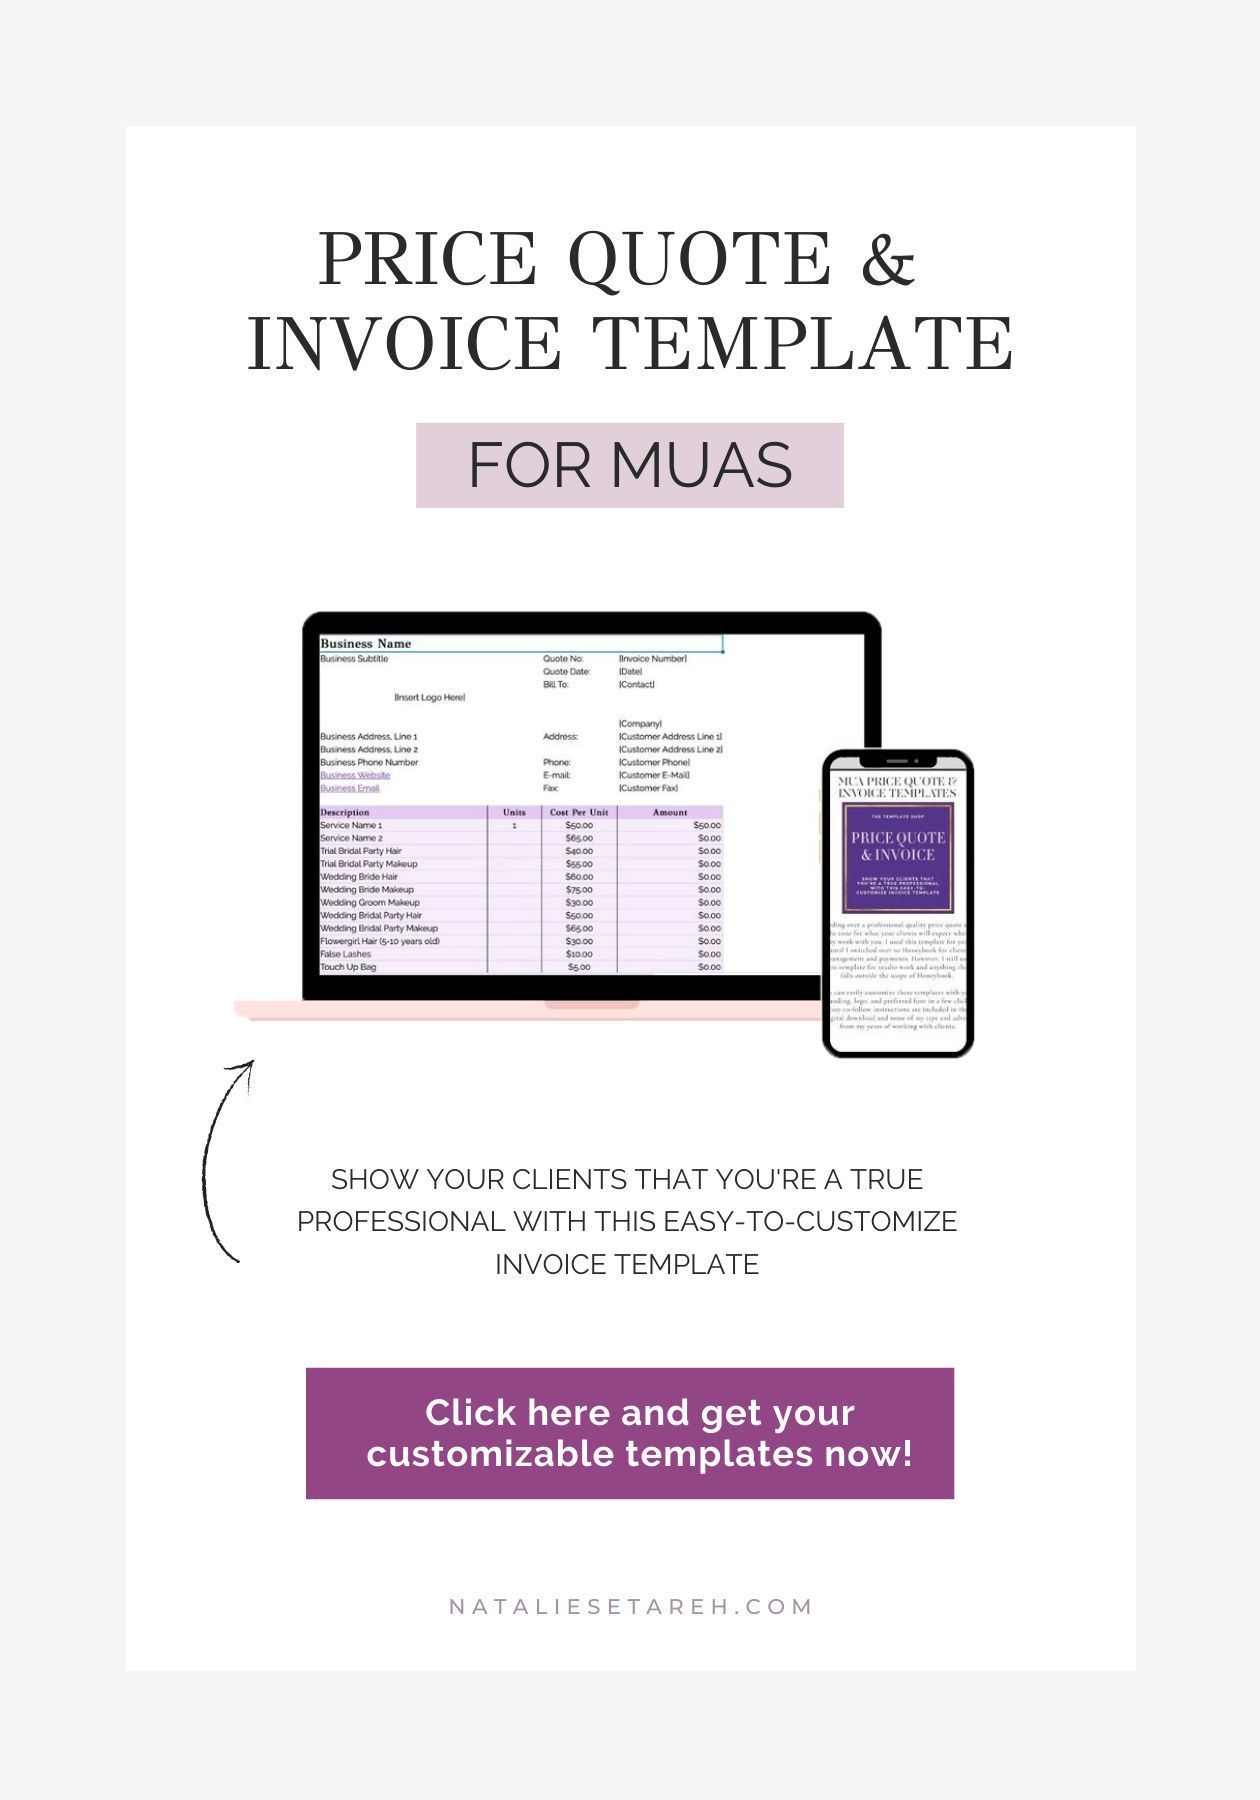 Price Quote Invoice Templates Freelance Makeup Artist Tools For Download Makeup Artist Business Freelance Makeup Artist Business Quote Template